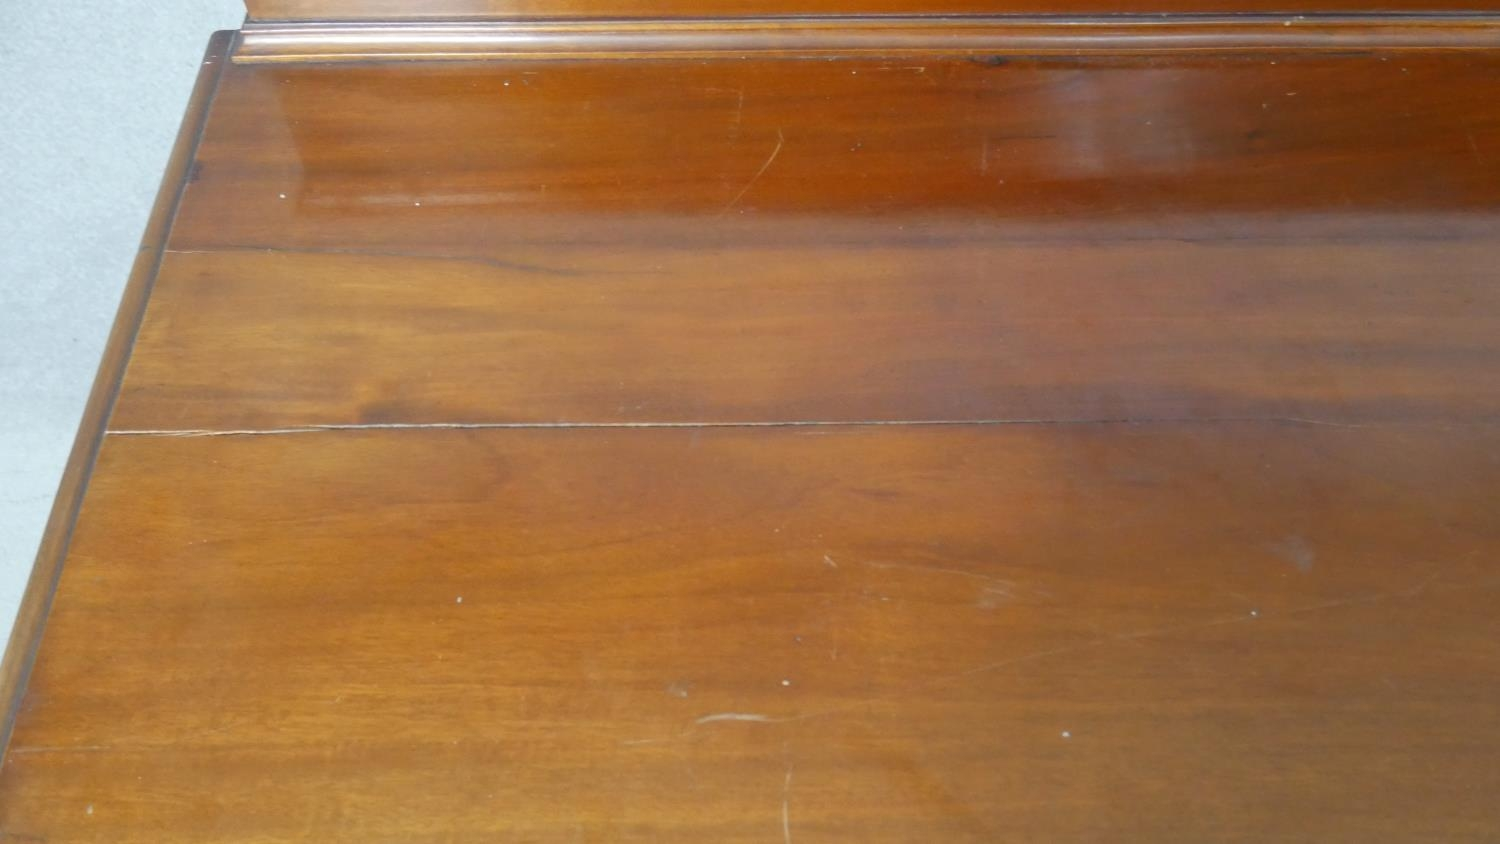 A pair of complementing early 20th century mahogany bedroom chests with ivory inset escutcheons - Image 7 of 10